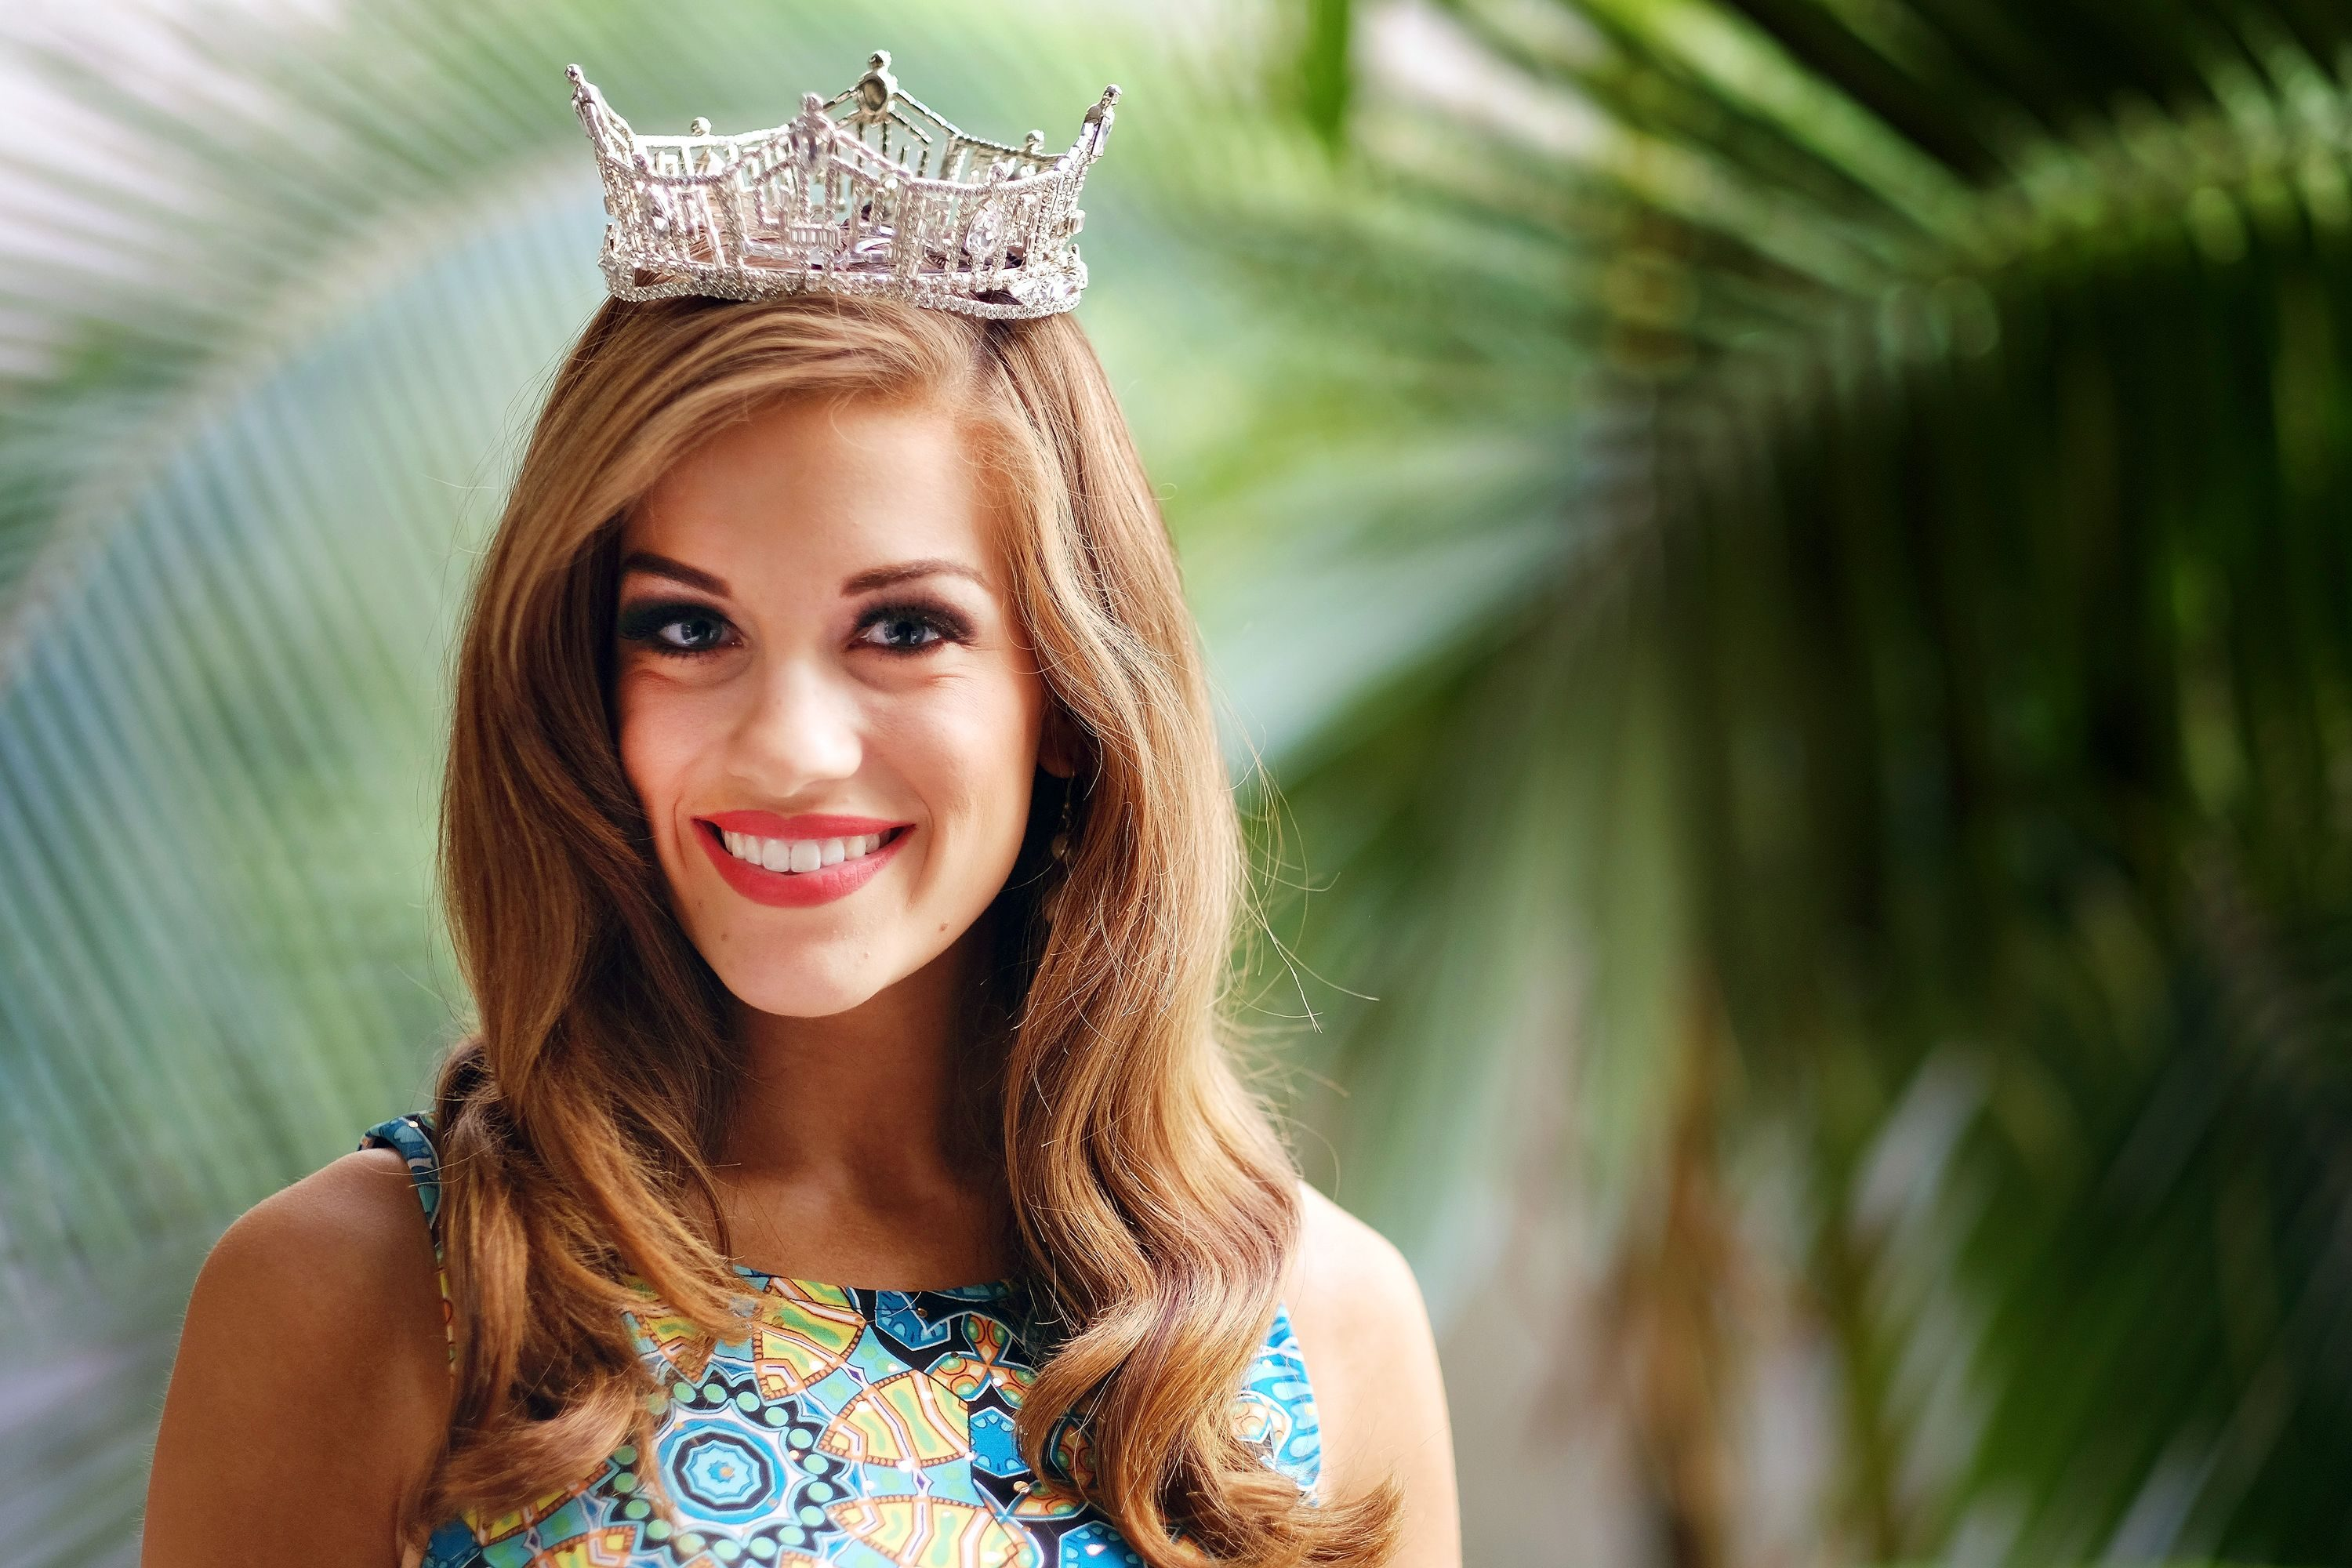 Mandatory Credit: Photo by Richard Vogel/AP/Shutterstock (6084407b) Betty Cantrell Newly-crowned Miss America 2016, Betty Cantrell poses for a portrait in Los Angeles. Cantrell, who is from Georgia, won a $50,000 scholarship with her title and hopes to someday perform on Broadway Miss America-Deflategate, Los Angeles, USA